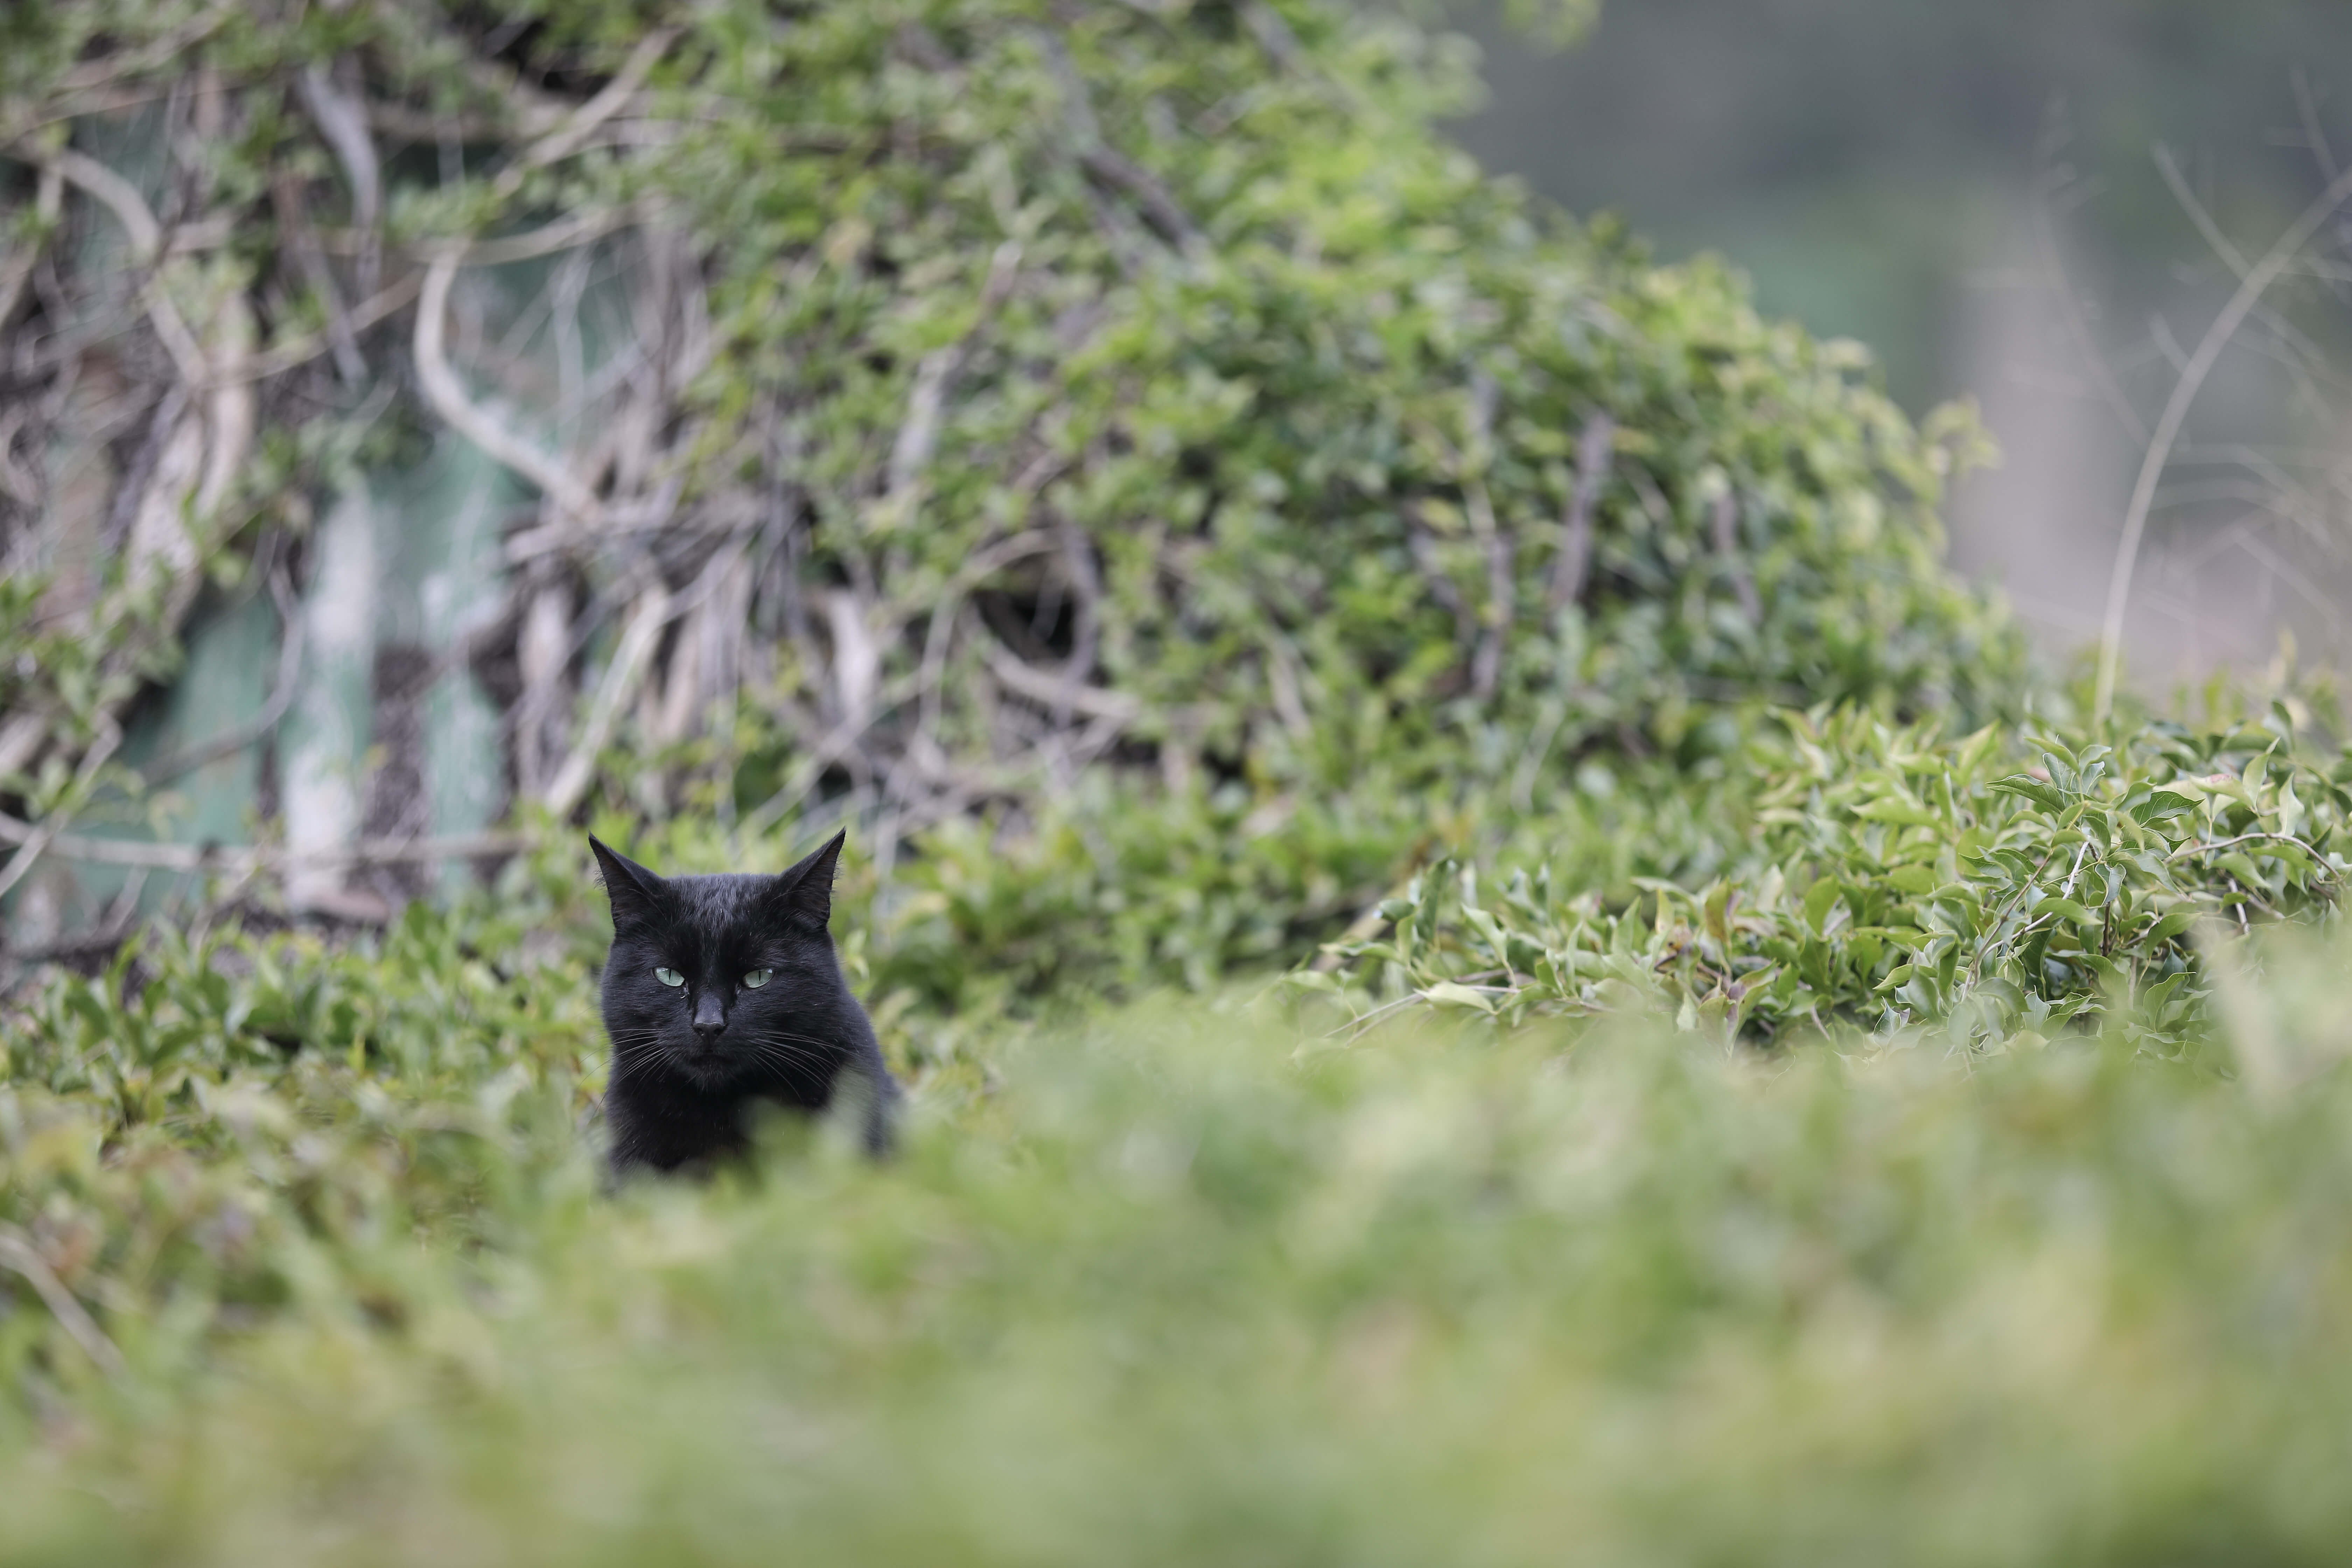 Image of black cat hiding in greenery taken by Dr. Chris Brown